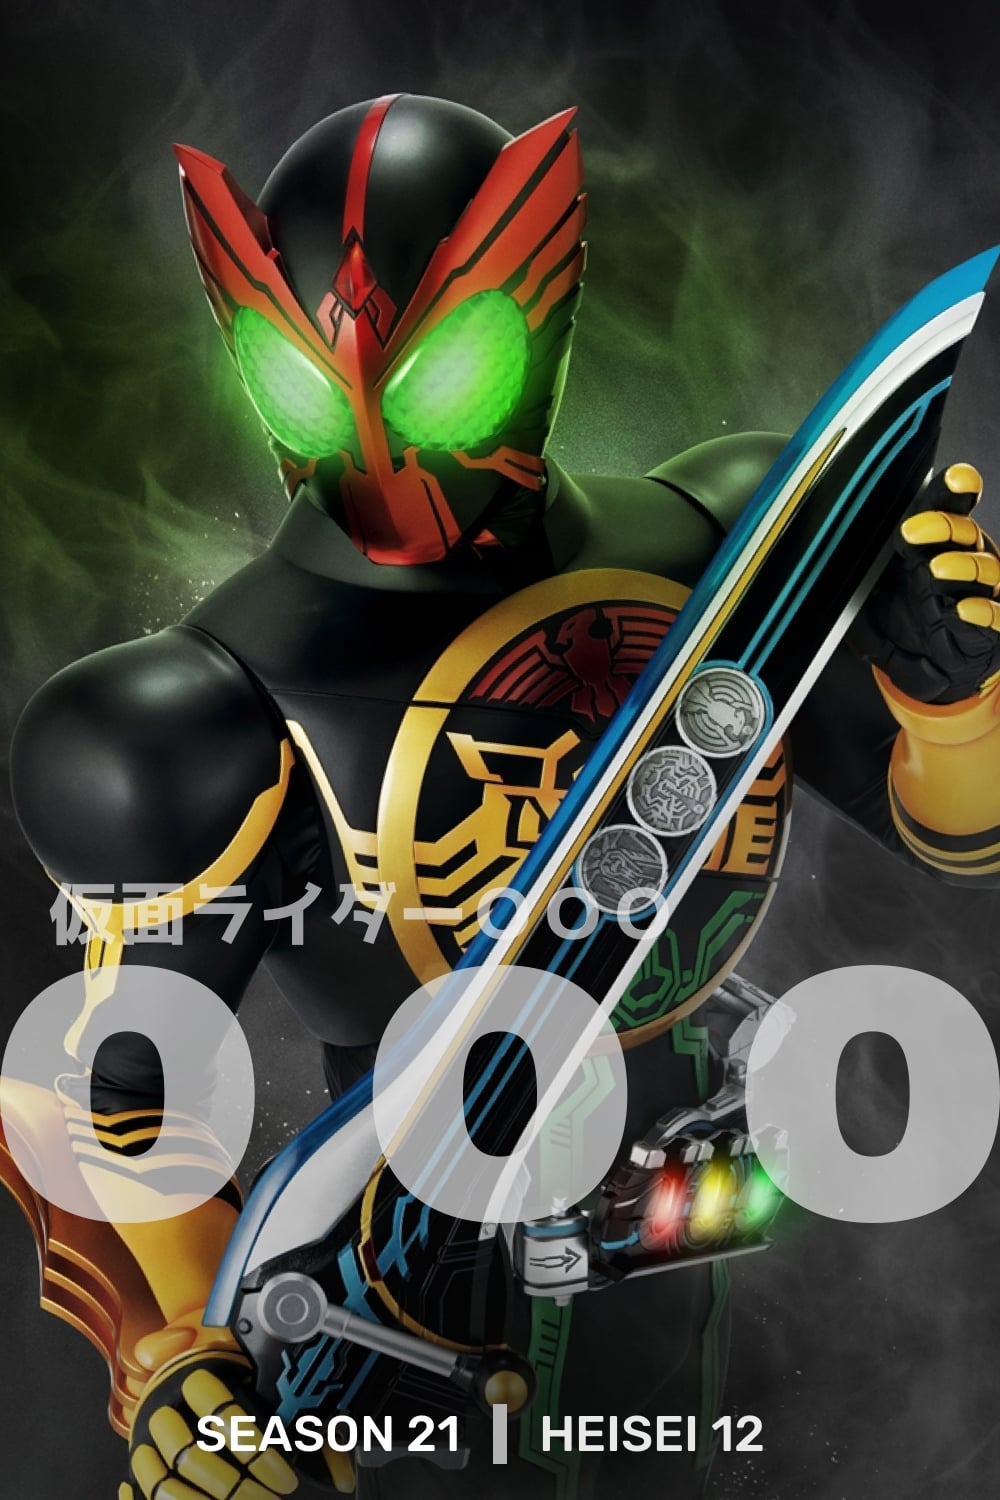 Kamen Rider - Season 21 Episode 1 : Medal, Underwear, Mysterious Arm Season 21